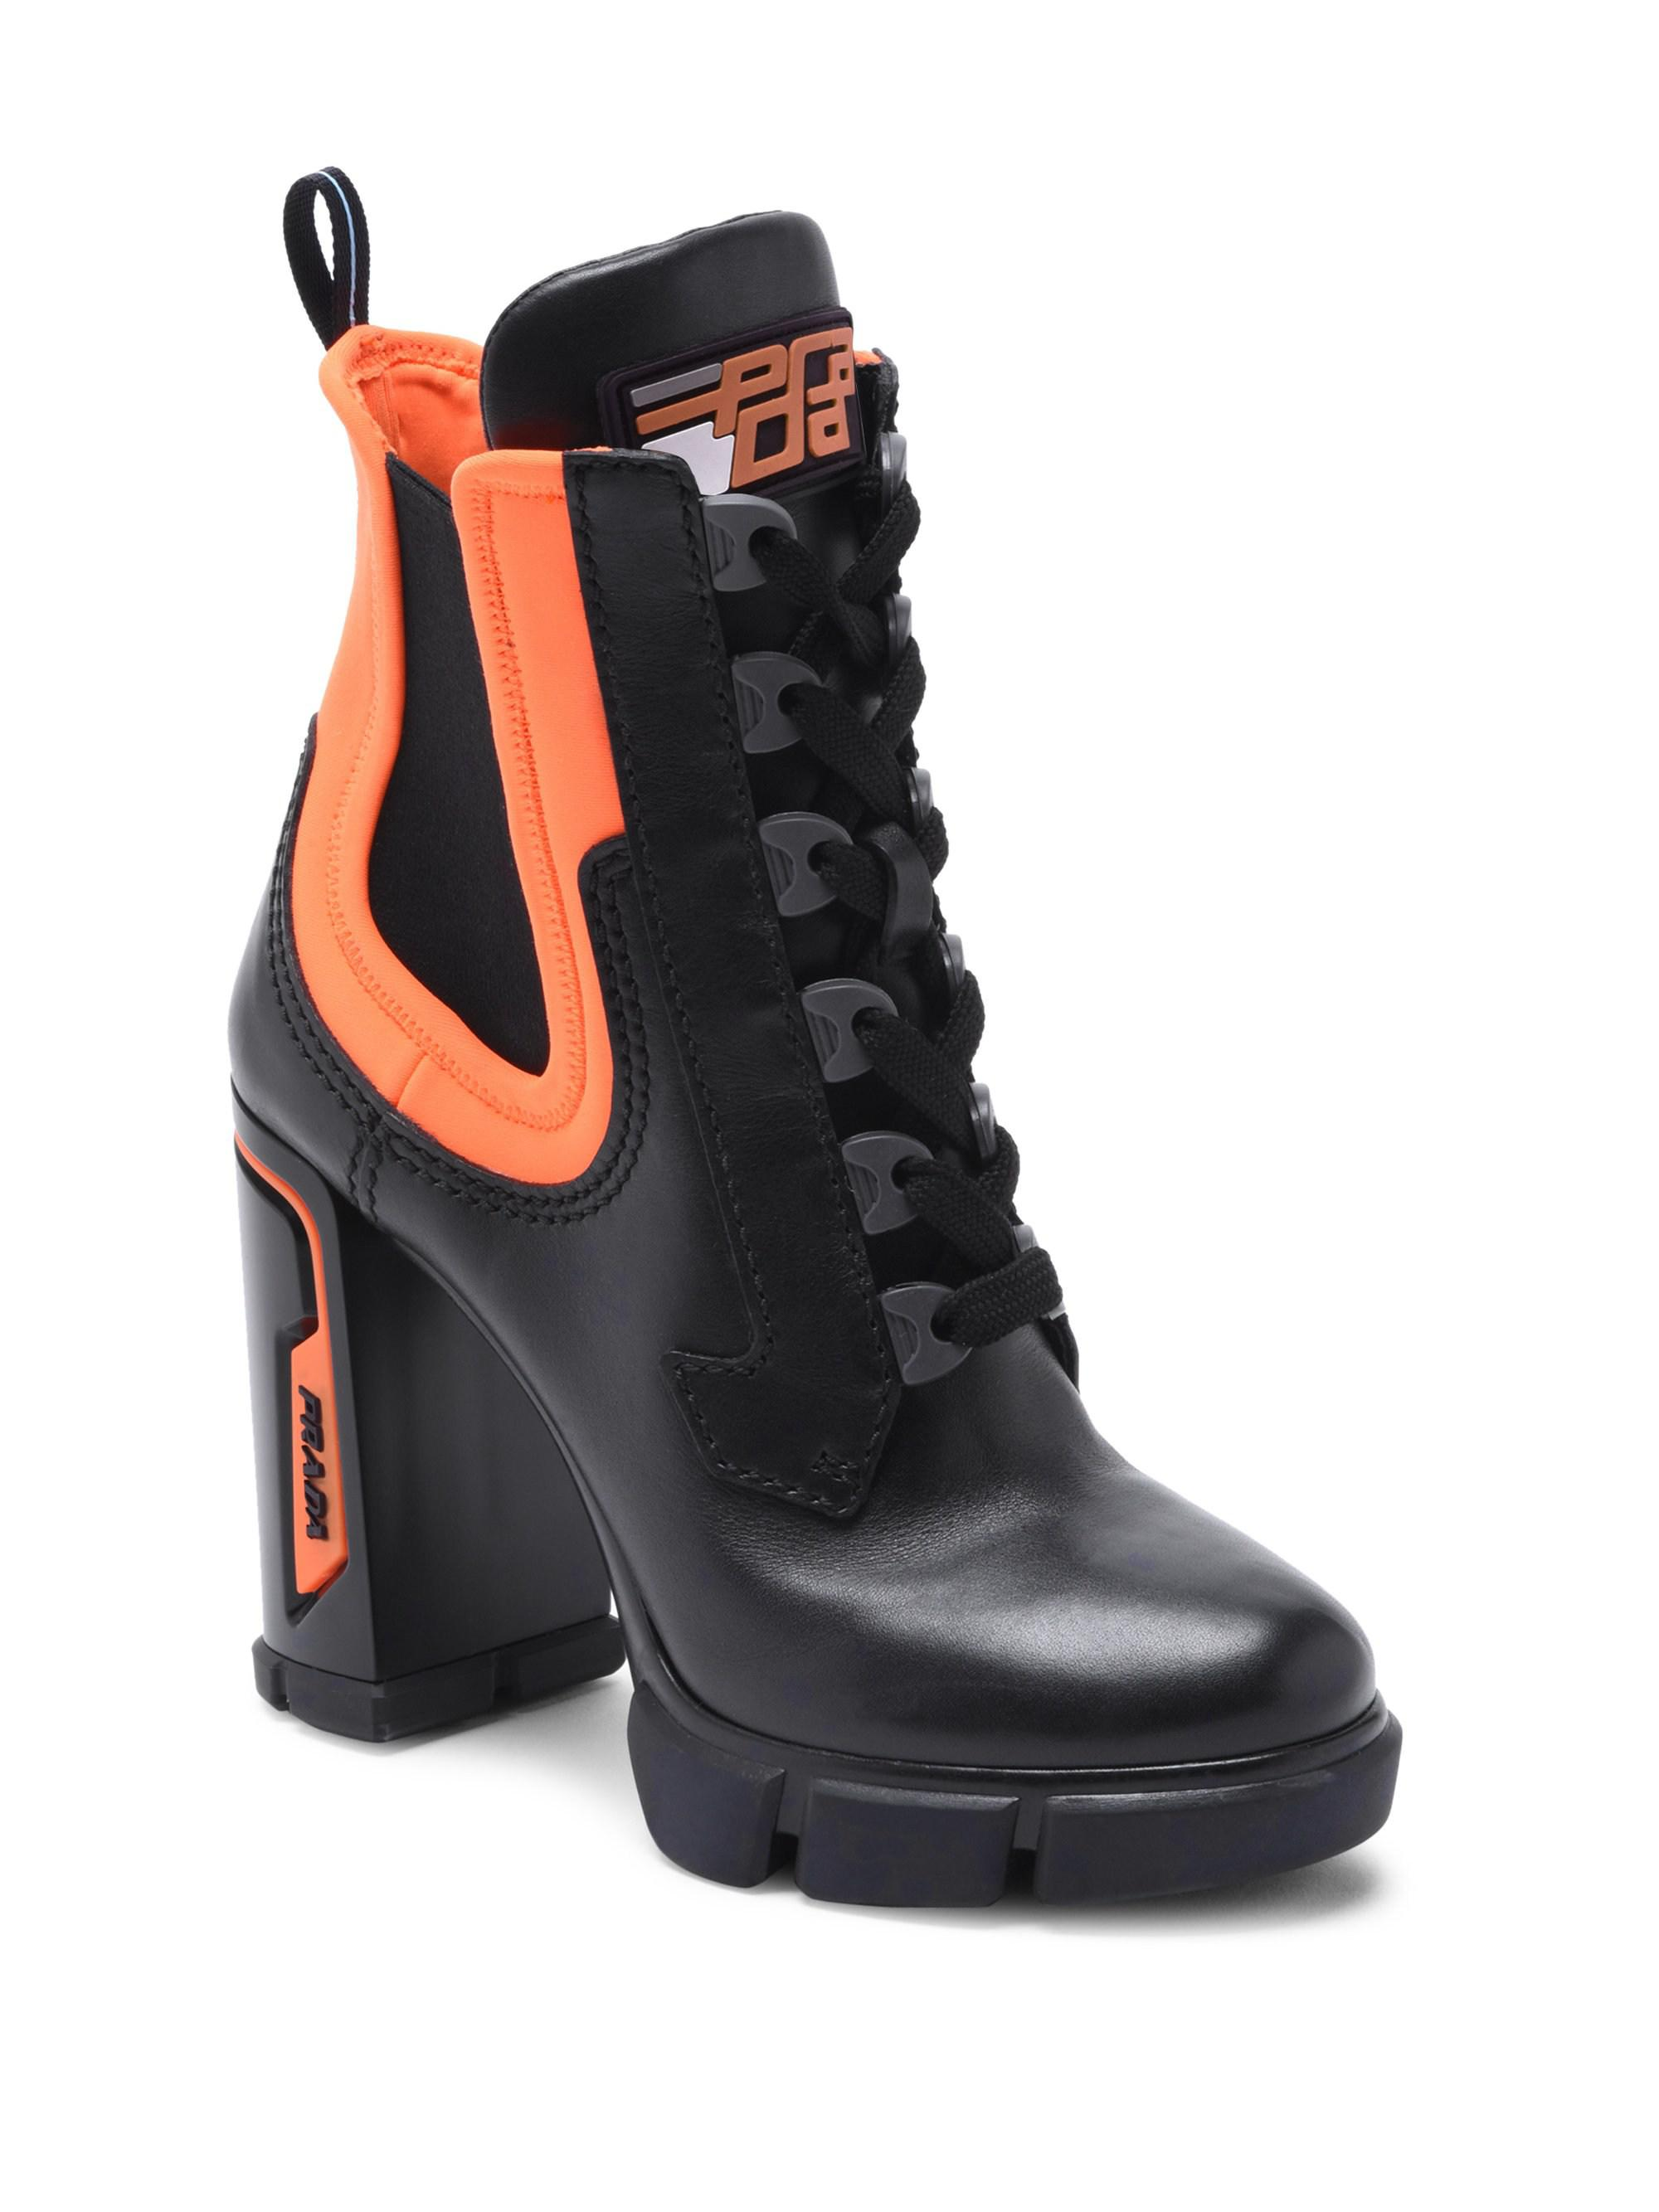 Prada Leather Chunky Lace-up Boots in